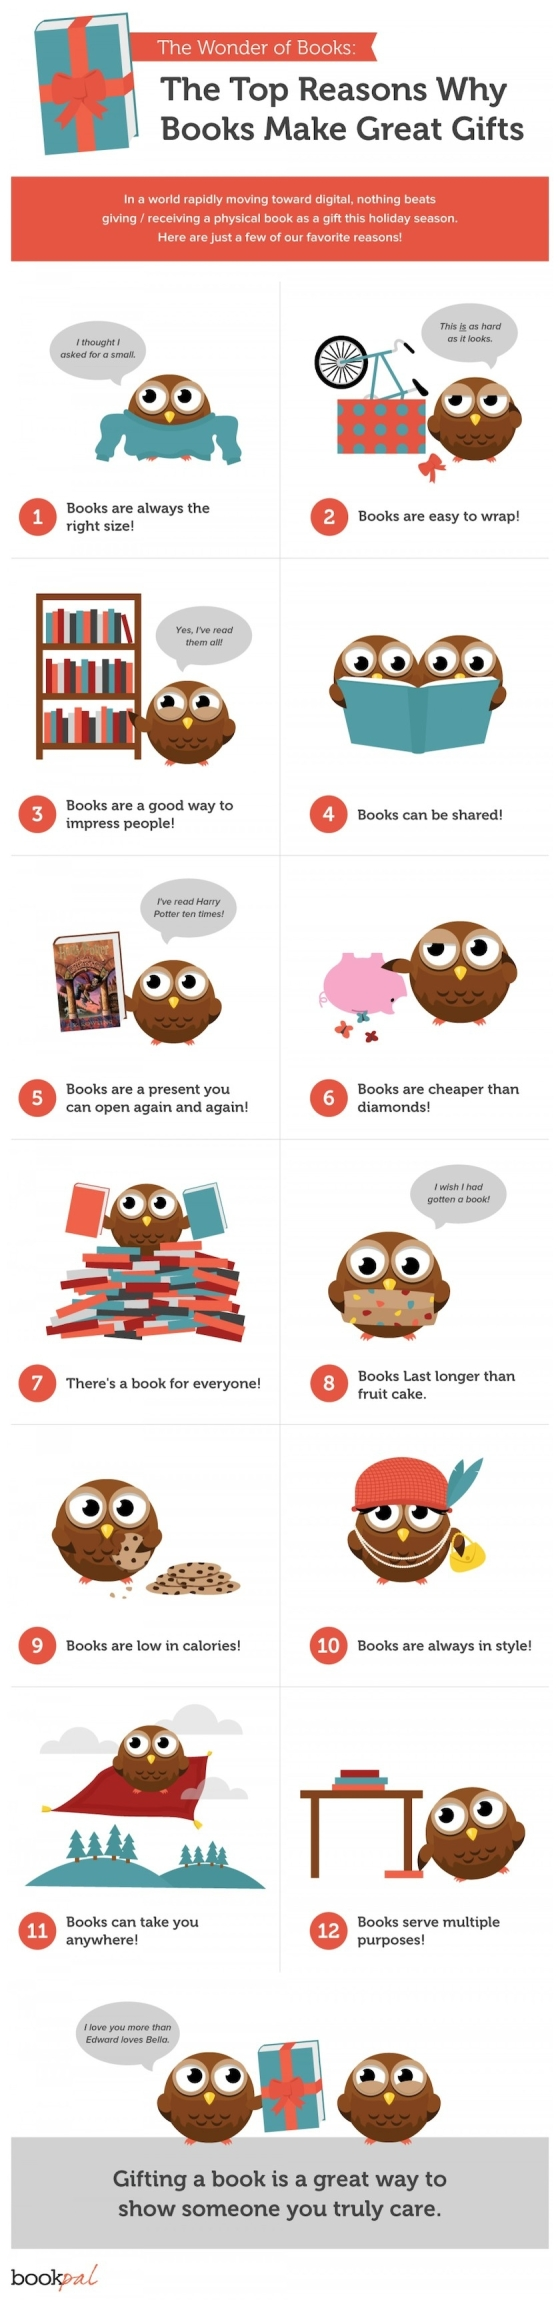 Book-make-great-gifts-infographic